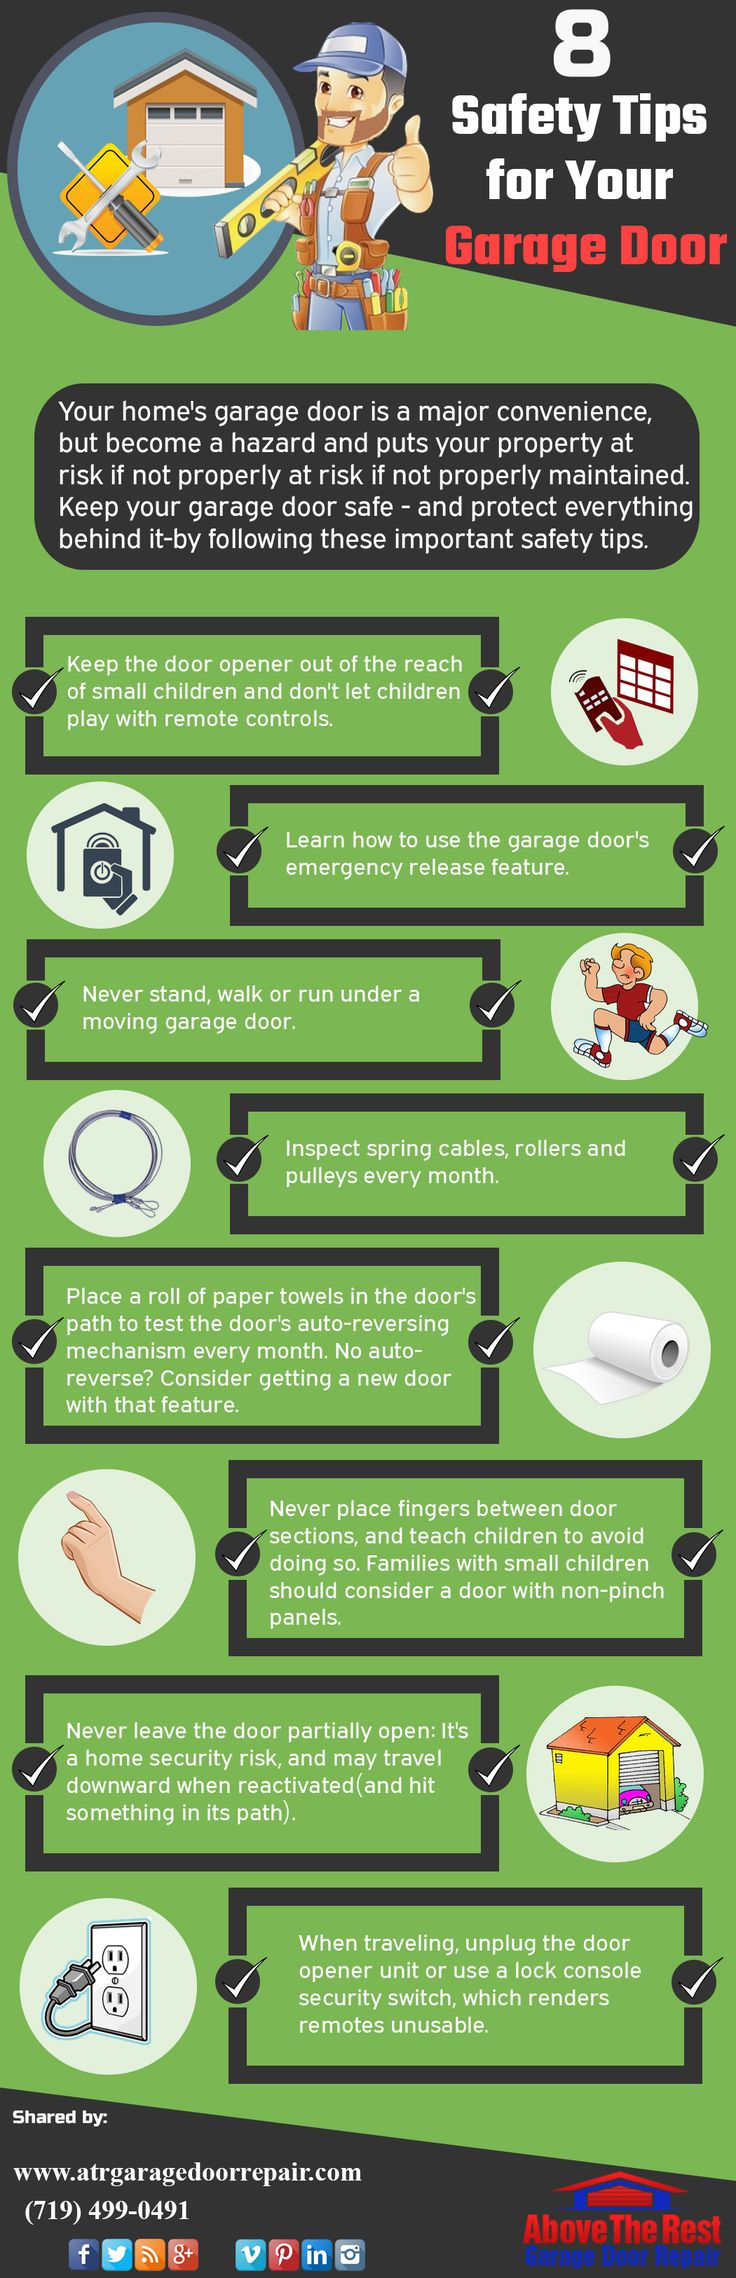 8 Safety Tips for Your Garage Door  Your home's garage door is a major convenience, but become a hazard and puts your property at risk if not properly at risk if not properly maintained.